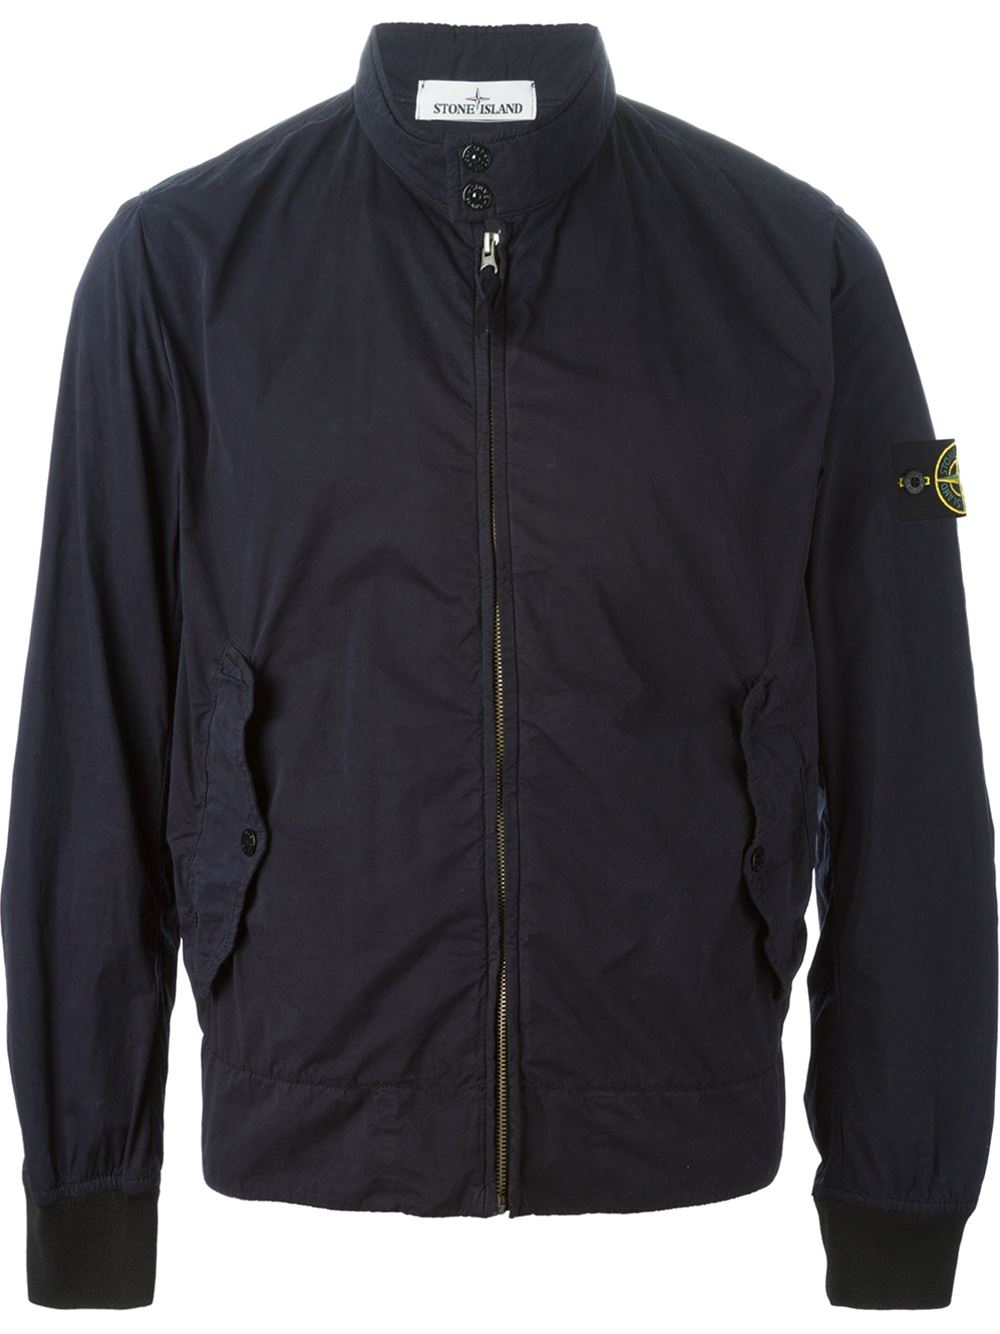 Lyst - Stone Island Bomber Jacket in Blue for Men